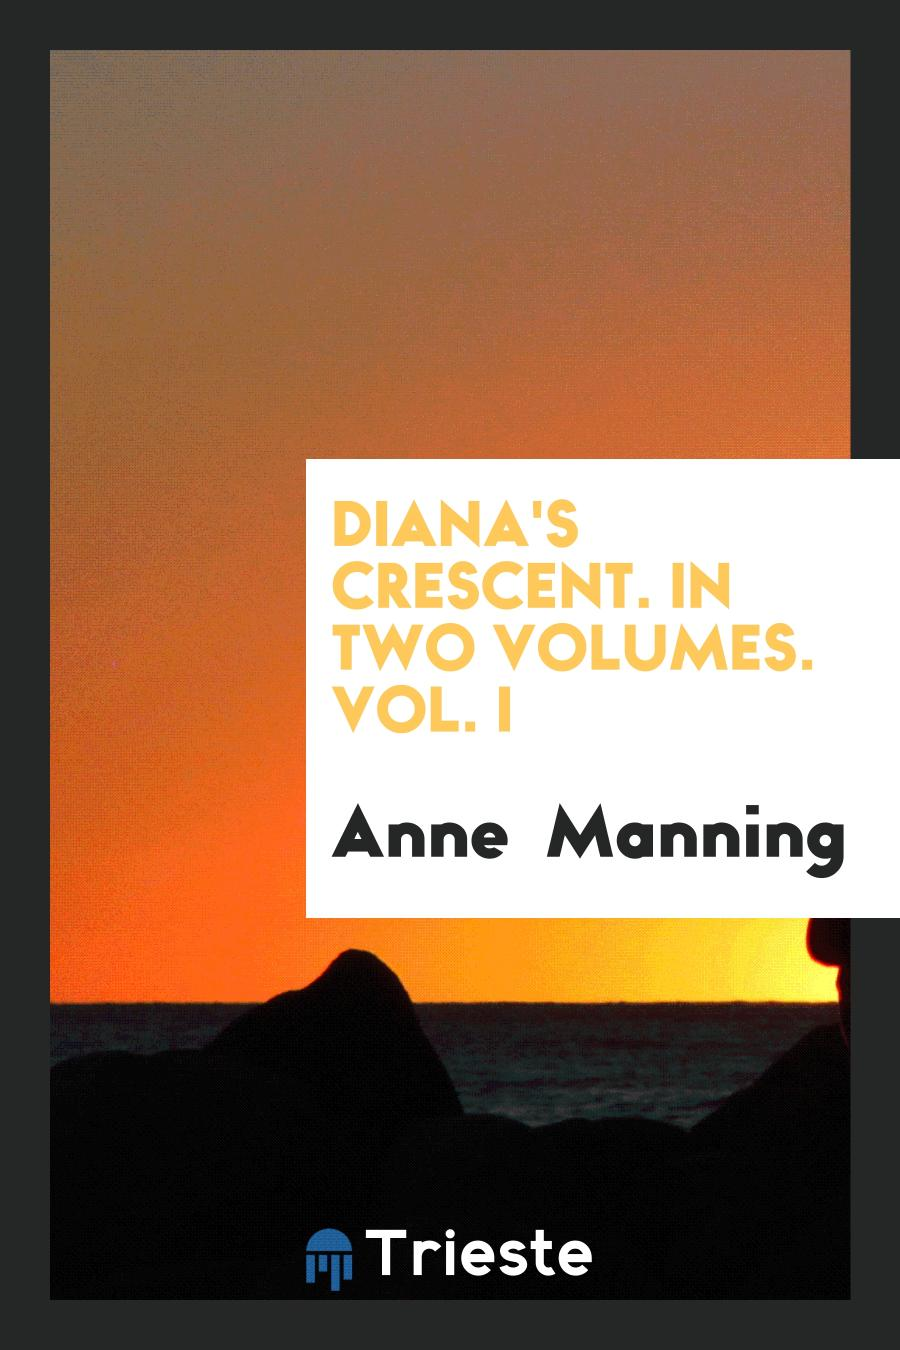 Diana's Crescent. In Two Volumes. Vol. I